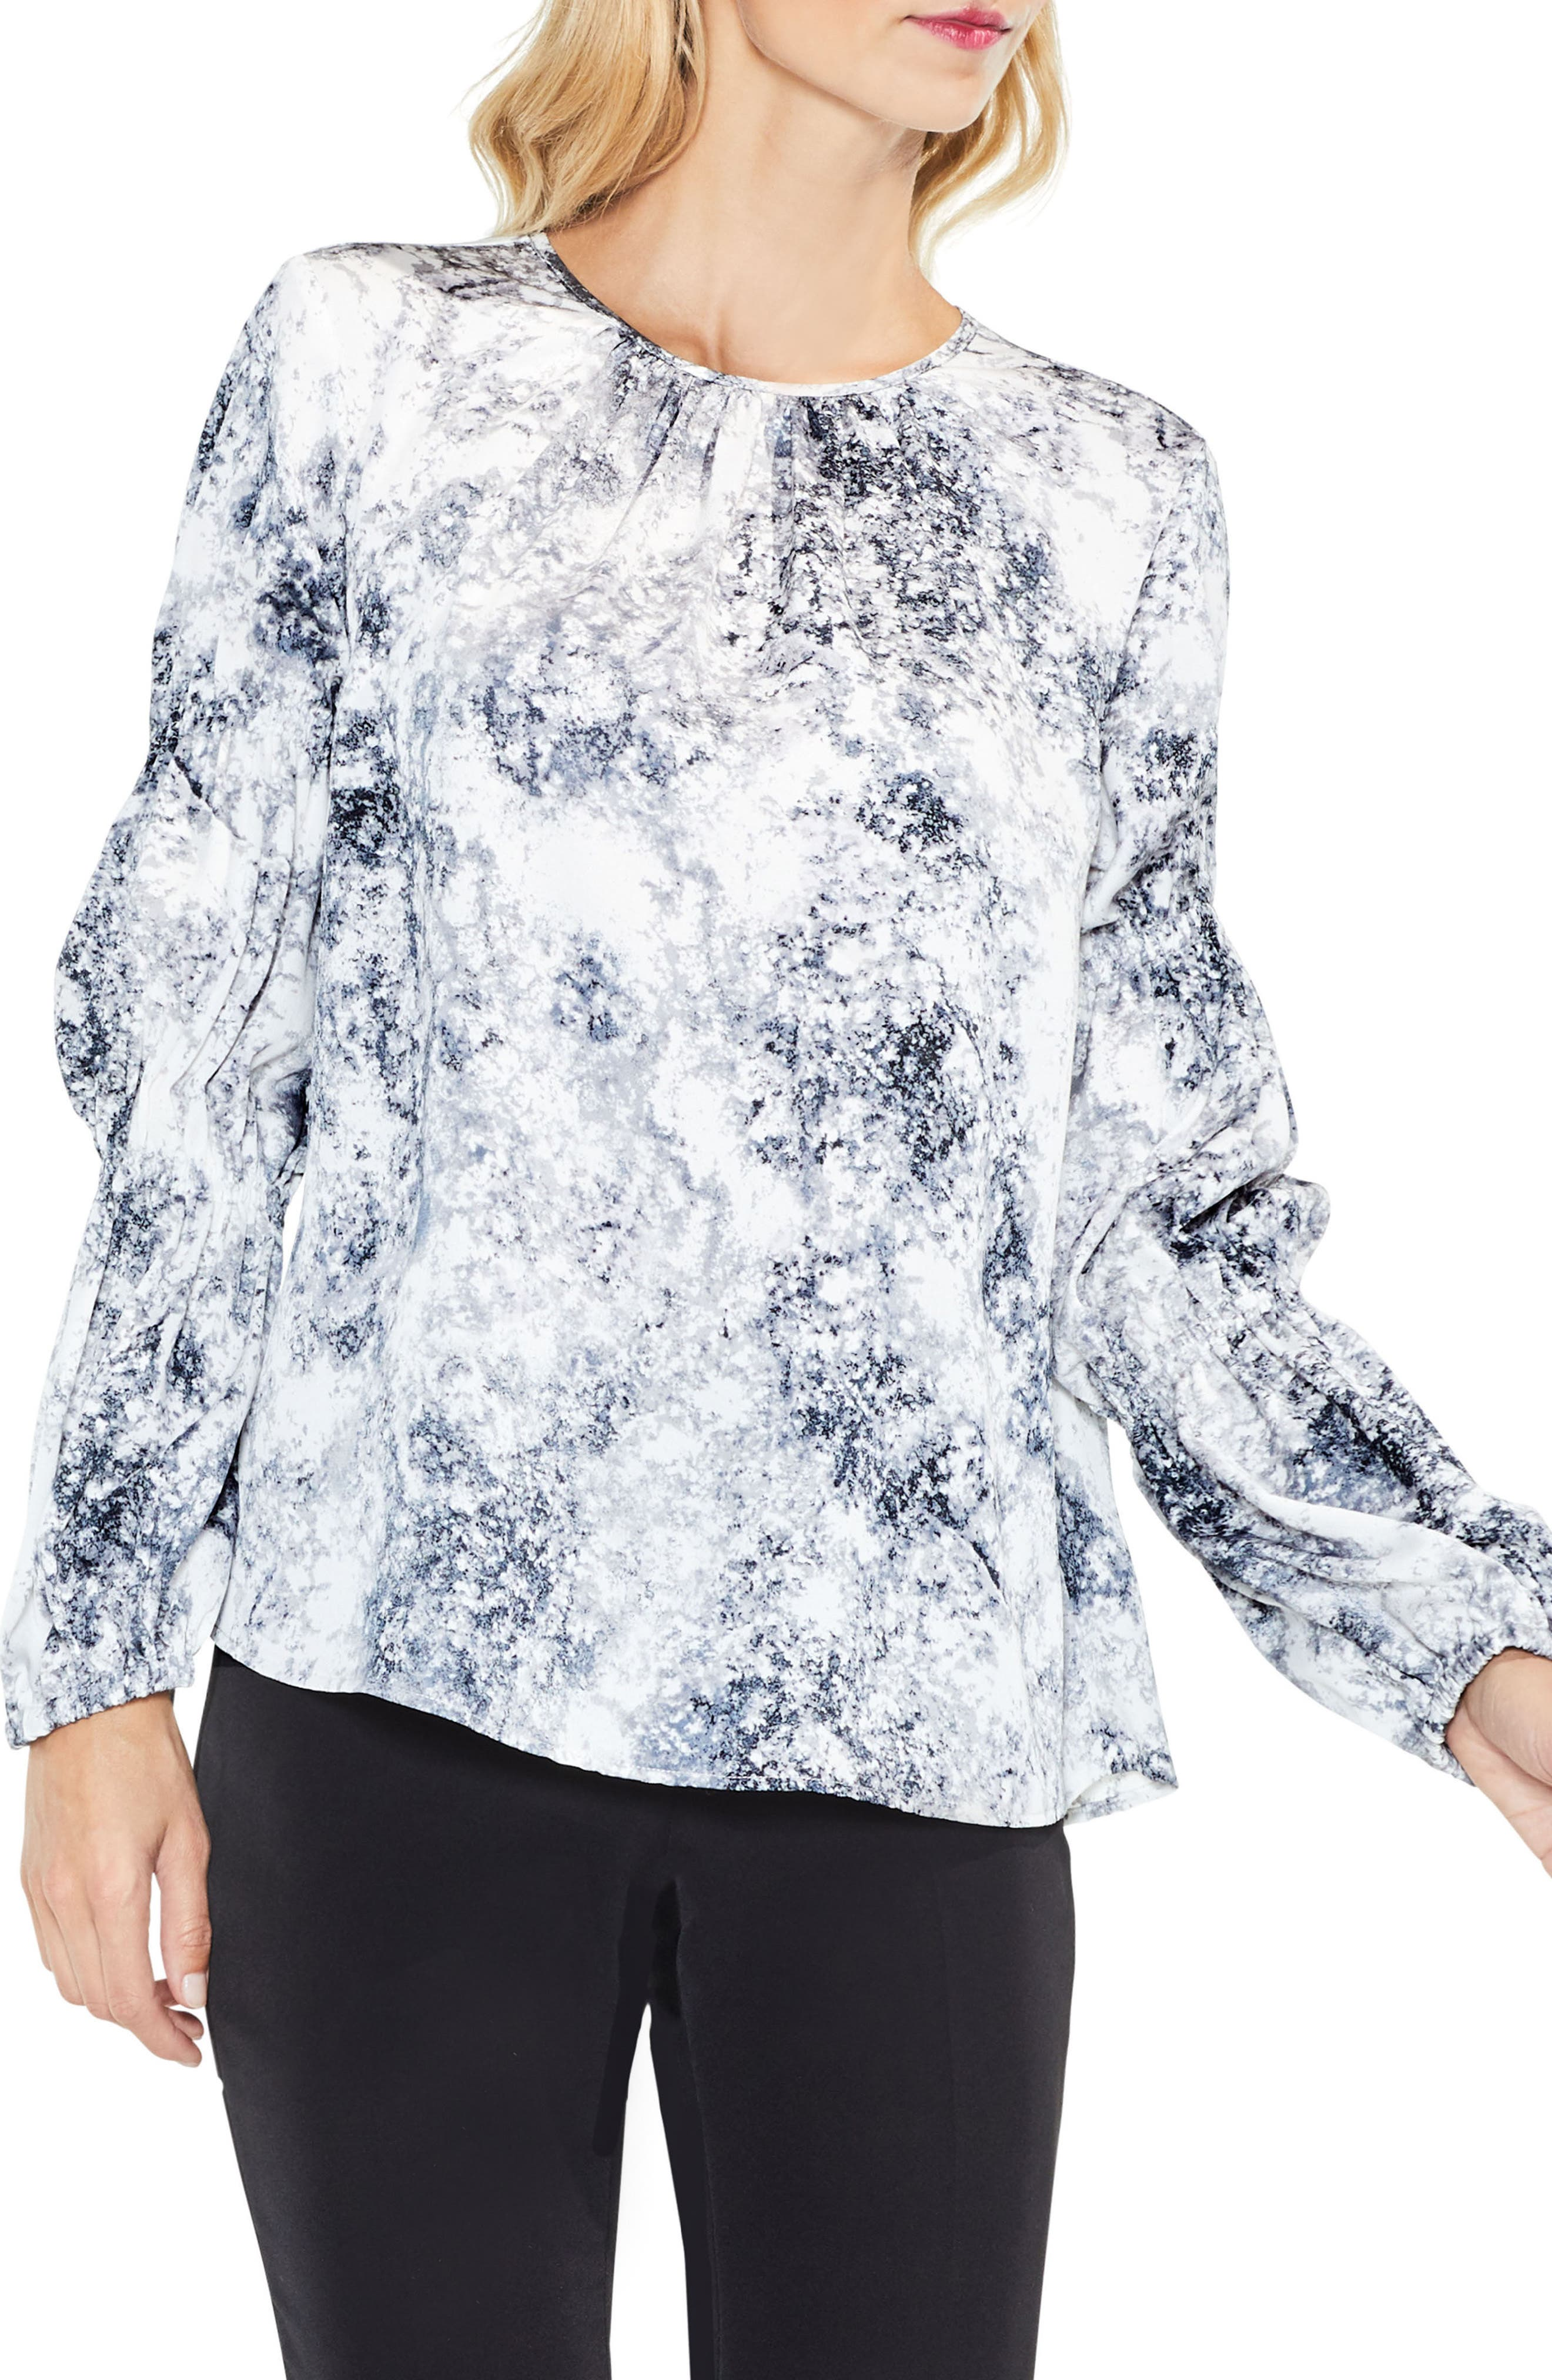 Speckled Cinch Sleeve Top,                         Main,                         color, Antique White